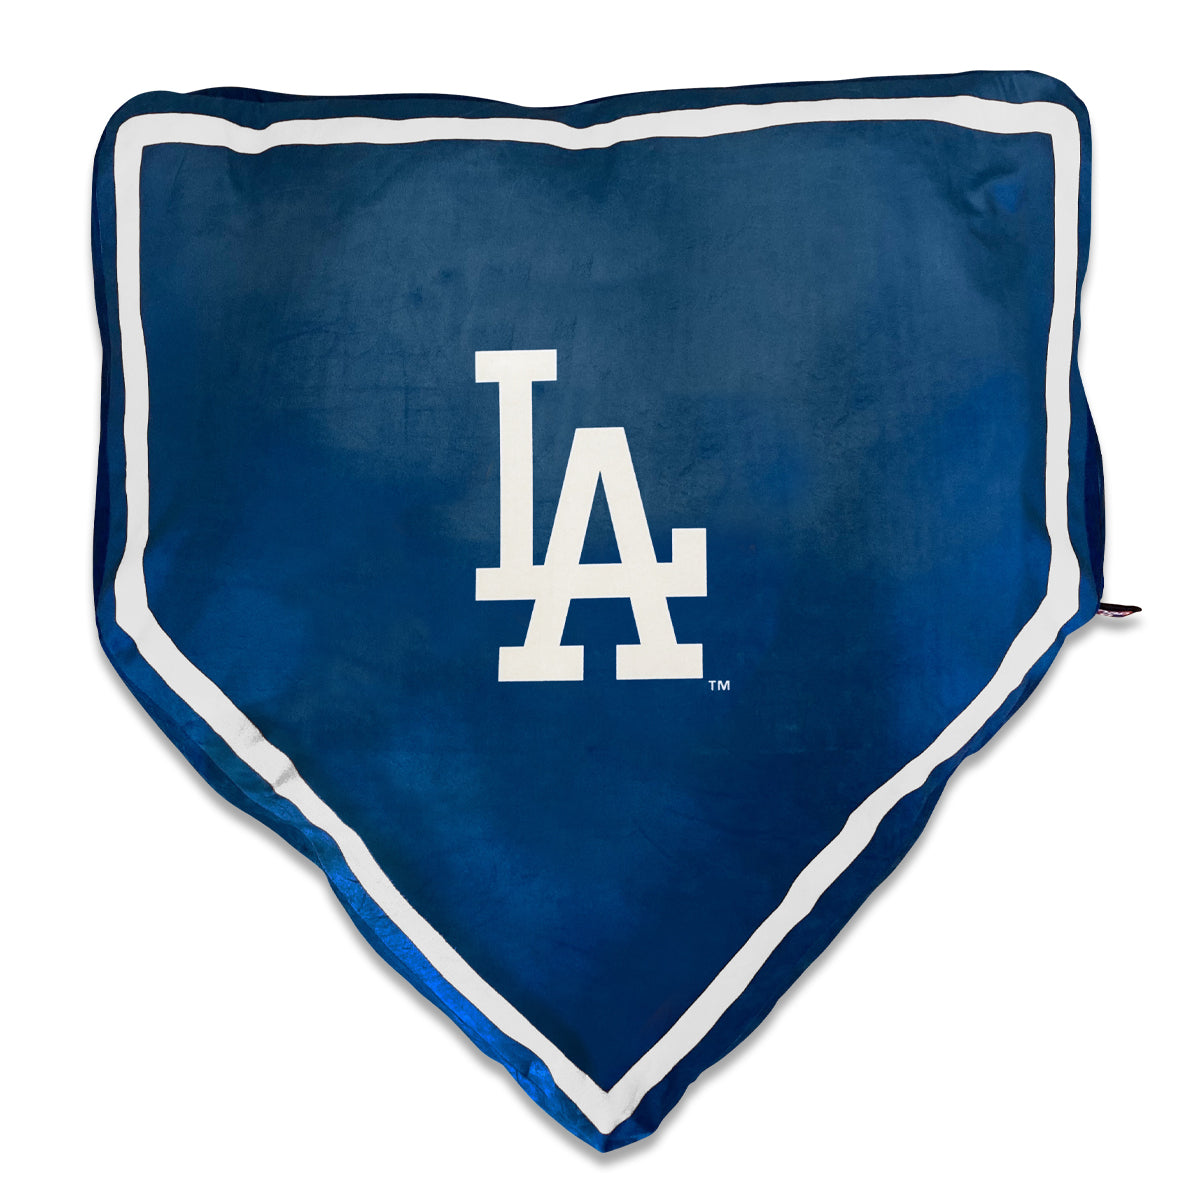 Los Angeles Dodgers Home Plate Bed by Nap Cap